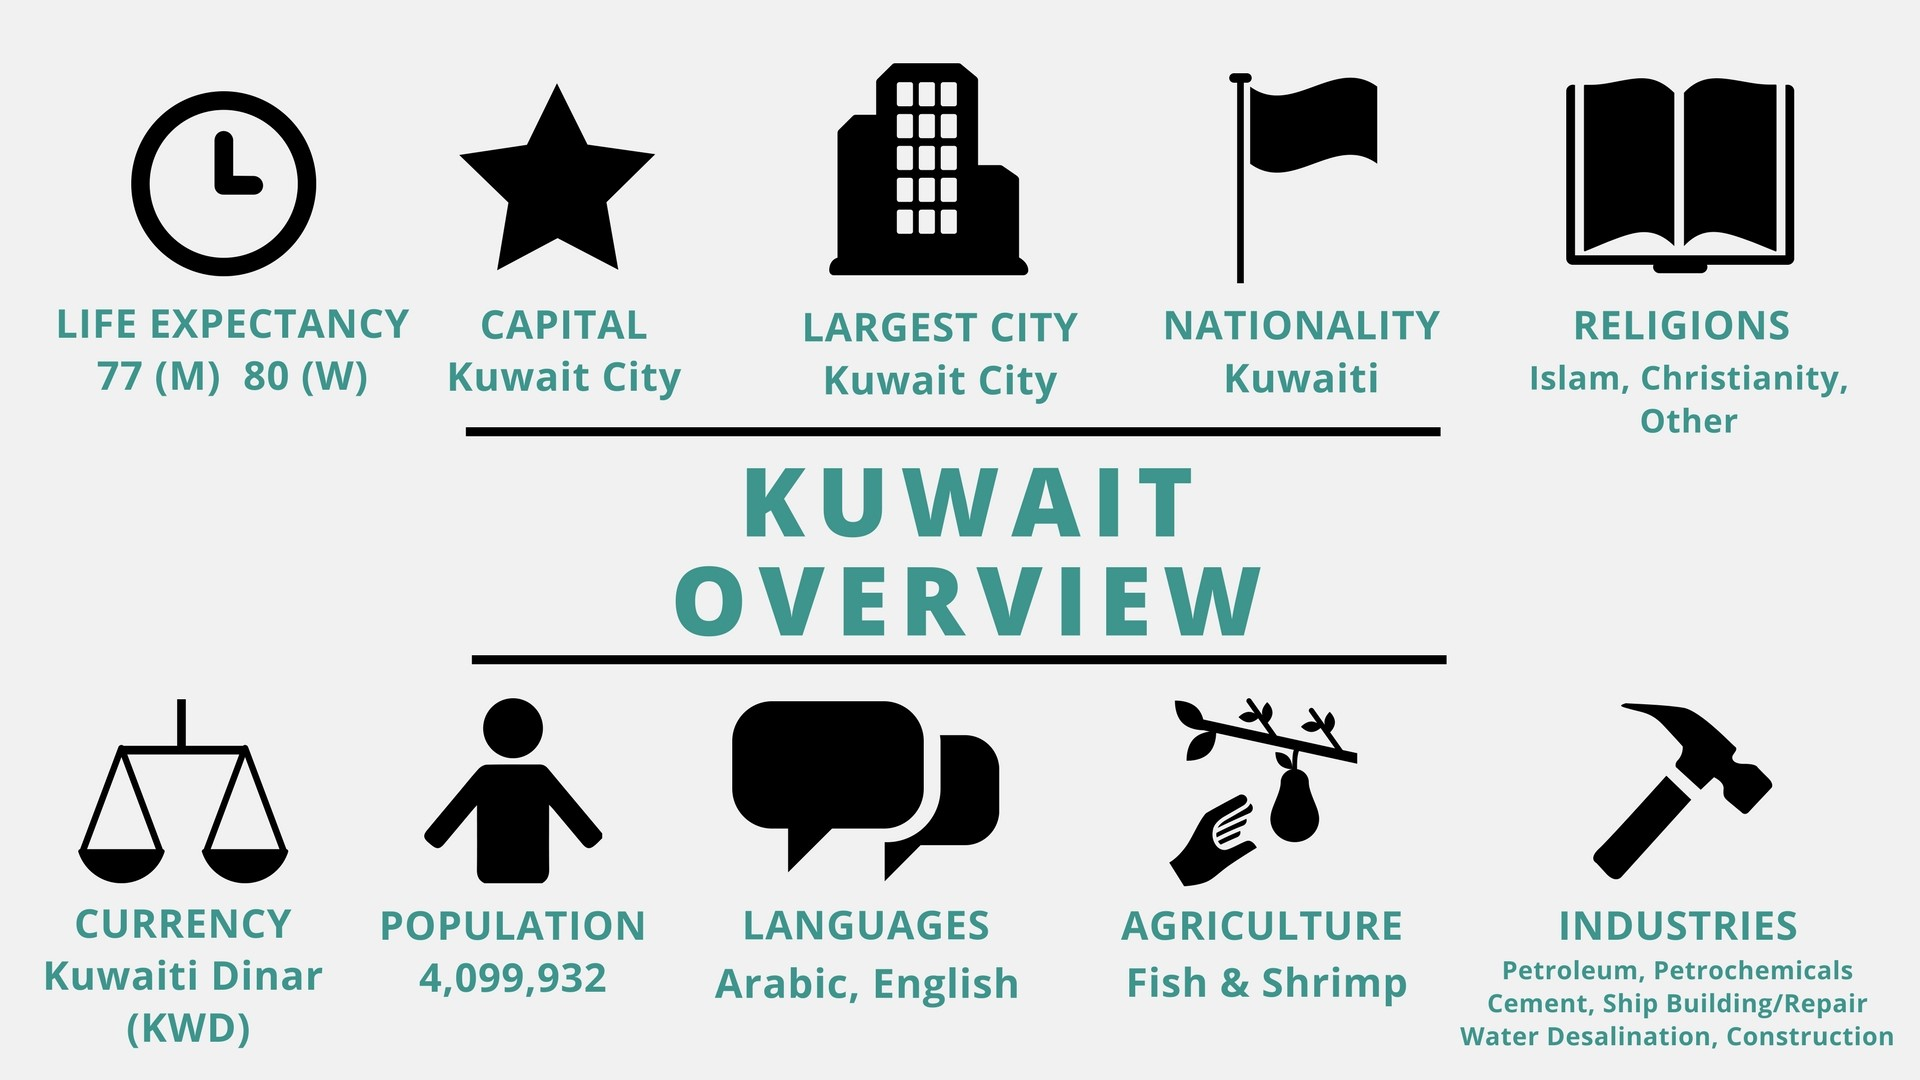 an overview of kuwait Persian gulf war: persian gulf war, international conflict (1990–91) triggered by iraq's invasion of kuwait on august 2, 1990.